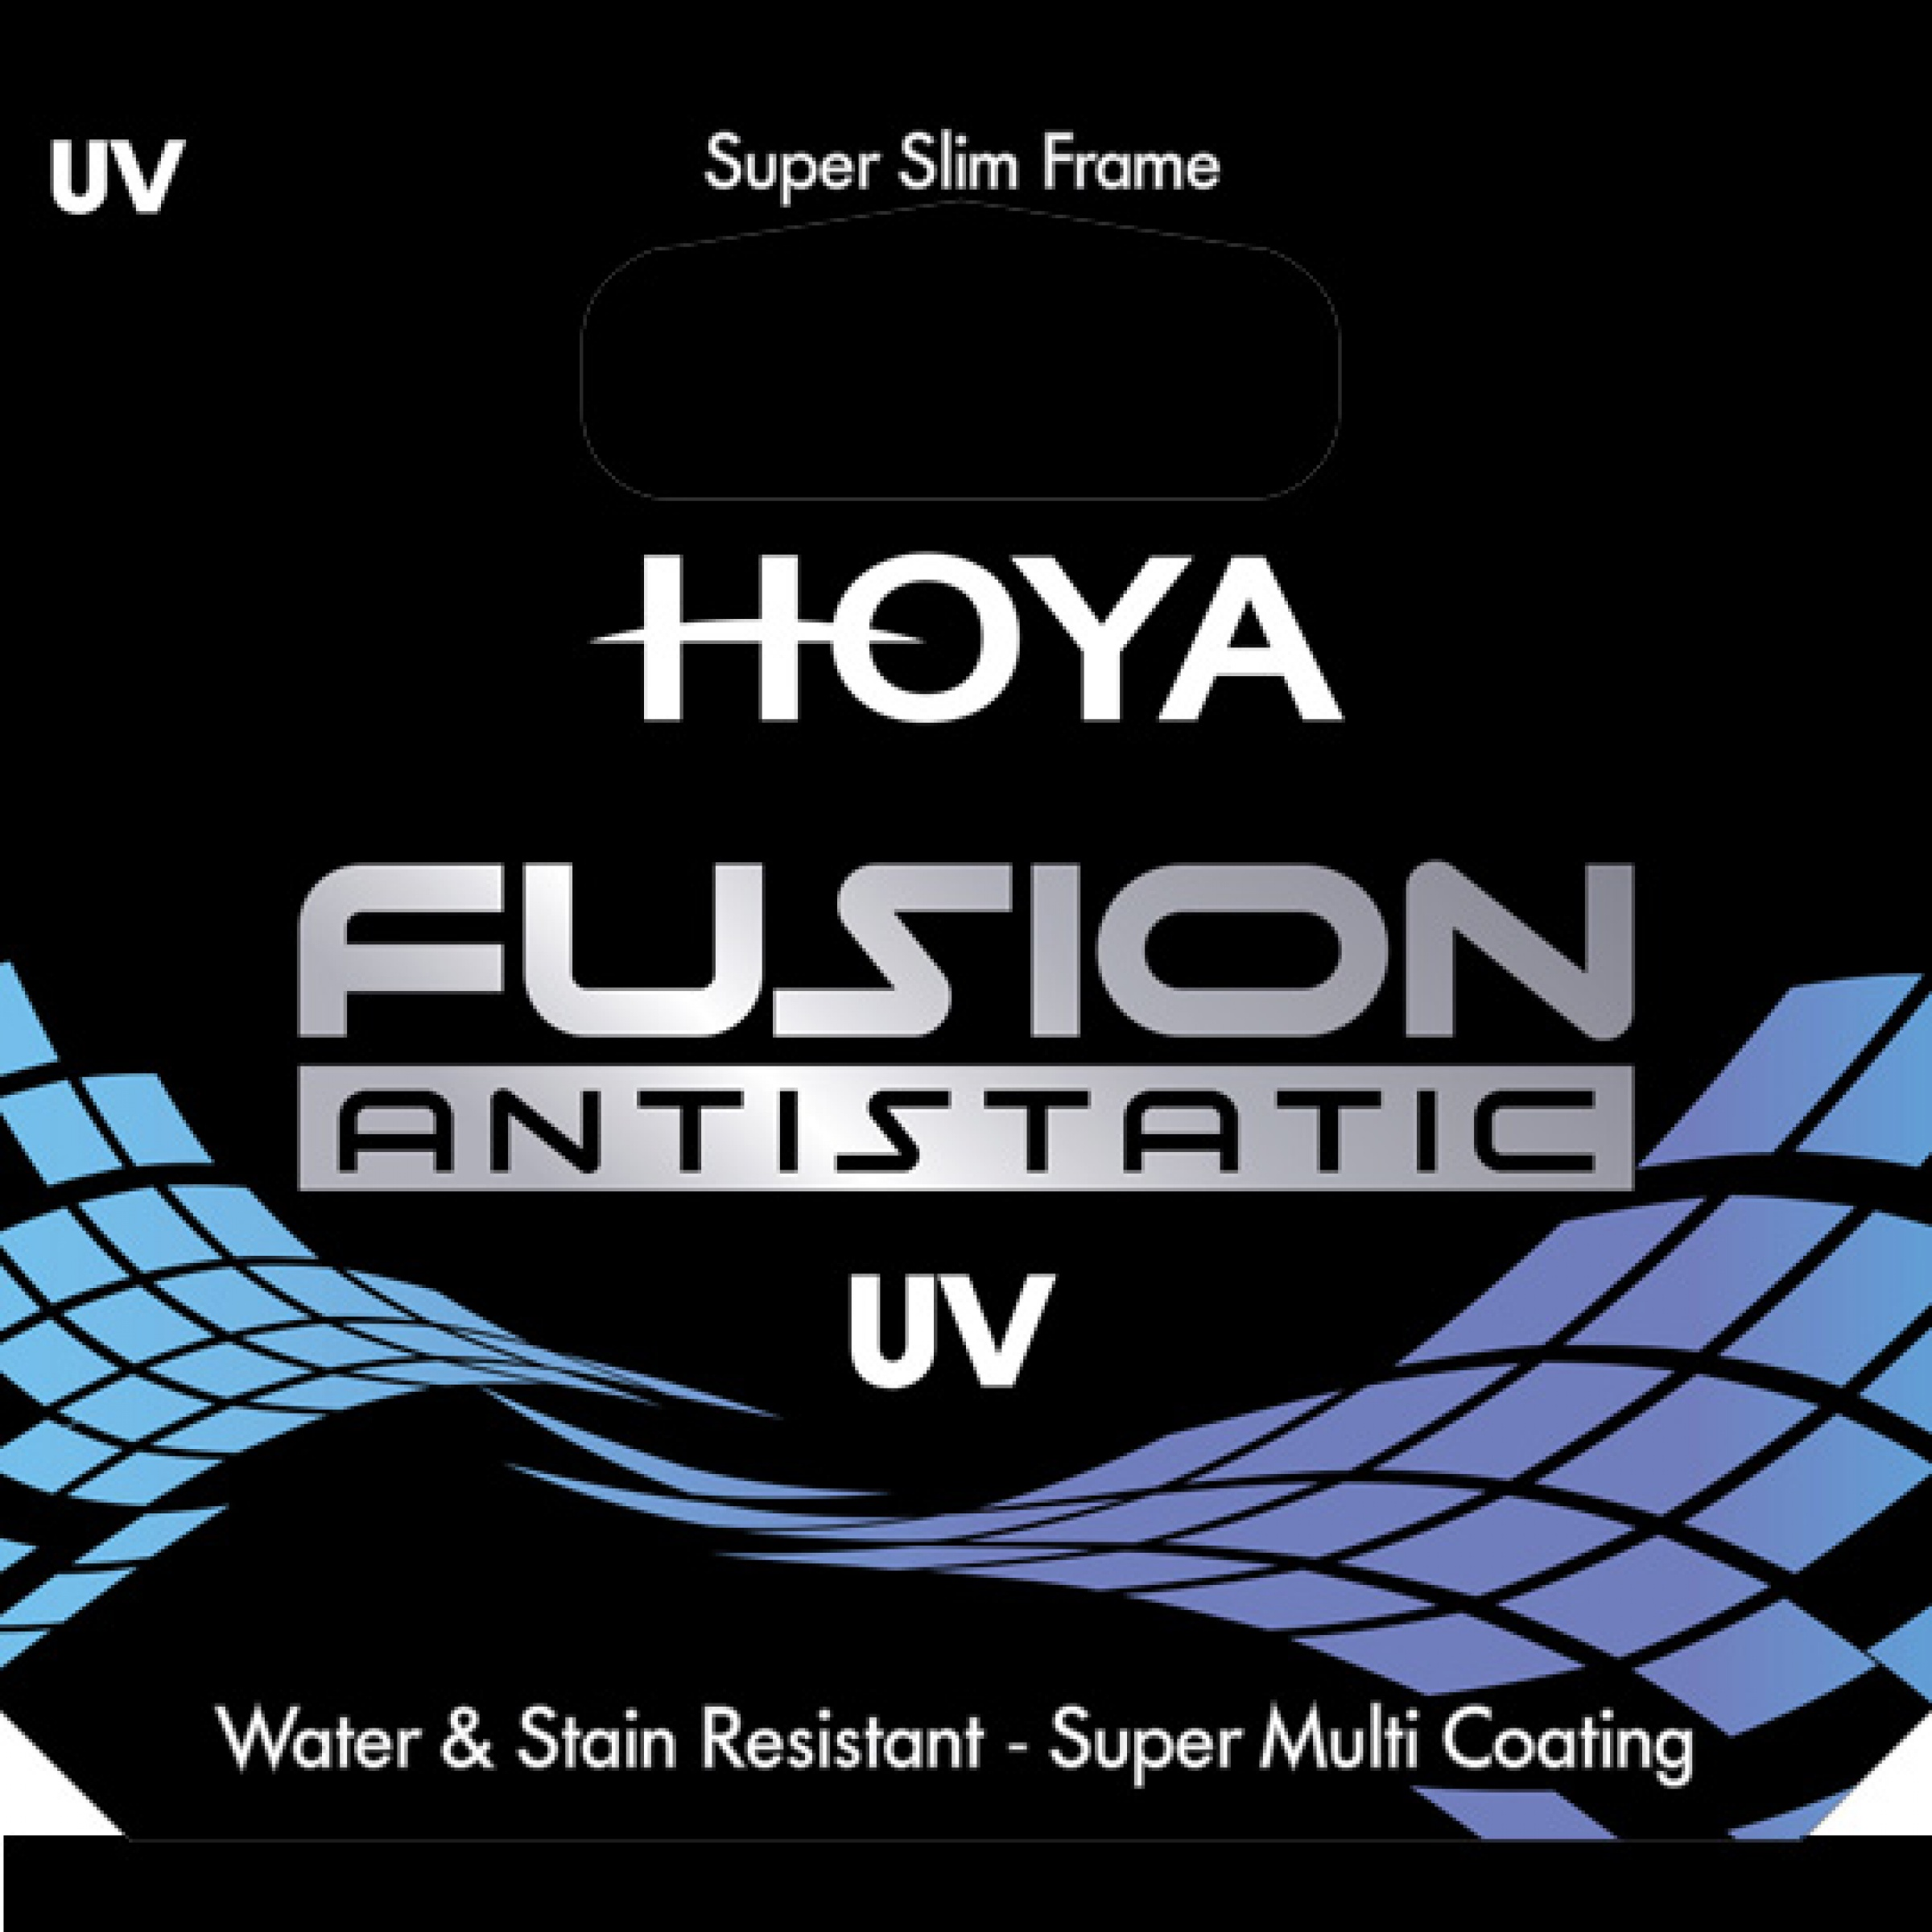 Hoya-82mm-UV-Fusion-Antistatic